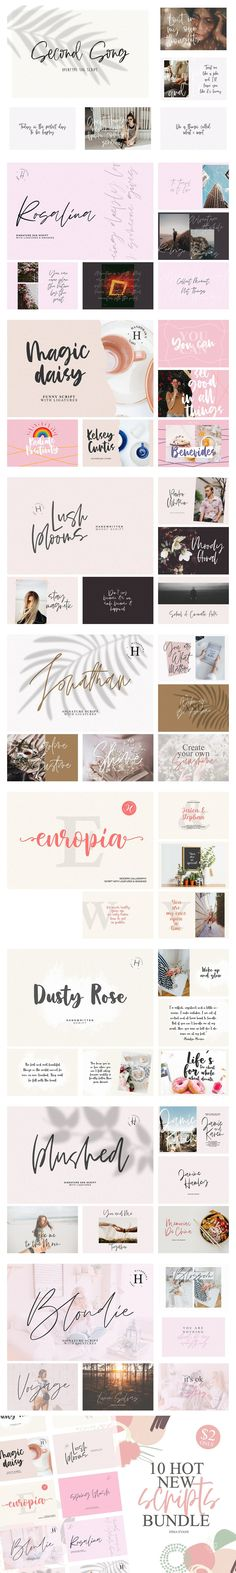 10 IN 1 HOT BUNDLE Fancy Fonts, All Fonts, About Me Blog, Messages, Graphic Design, Songs, Hot, Ninja, Stylish Fonts